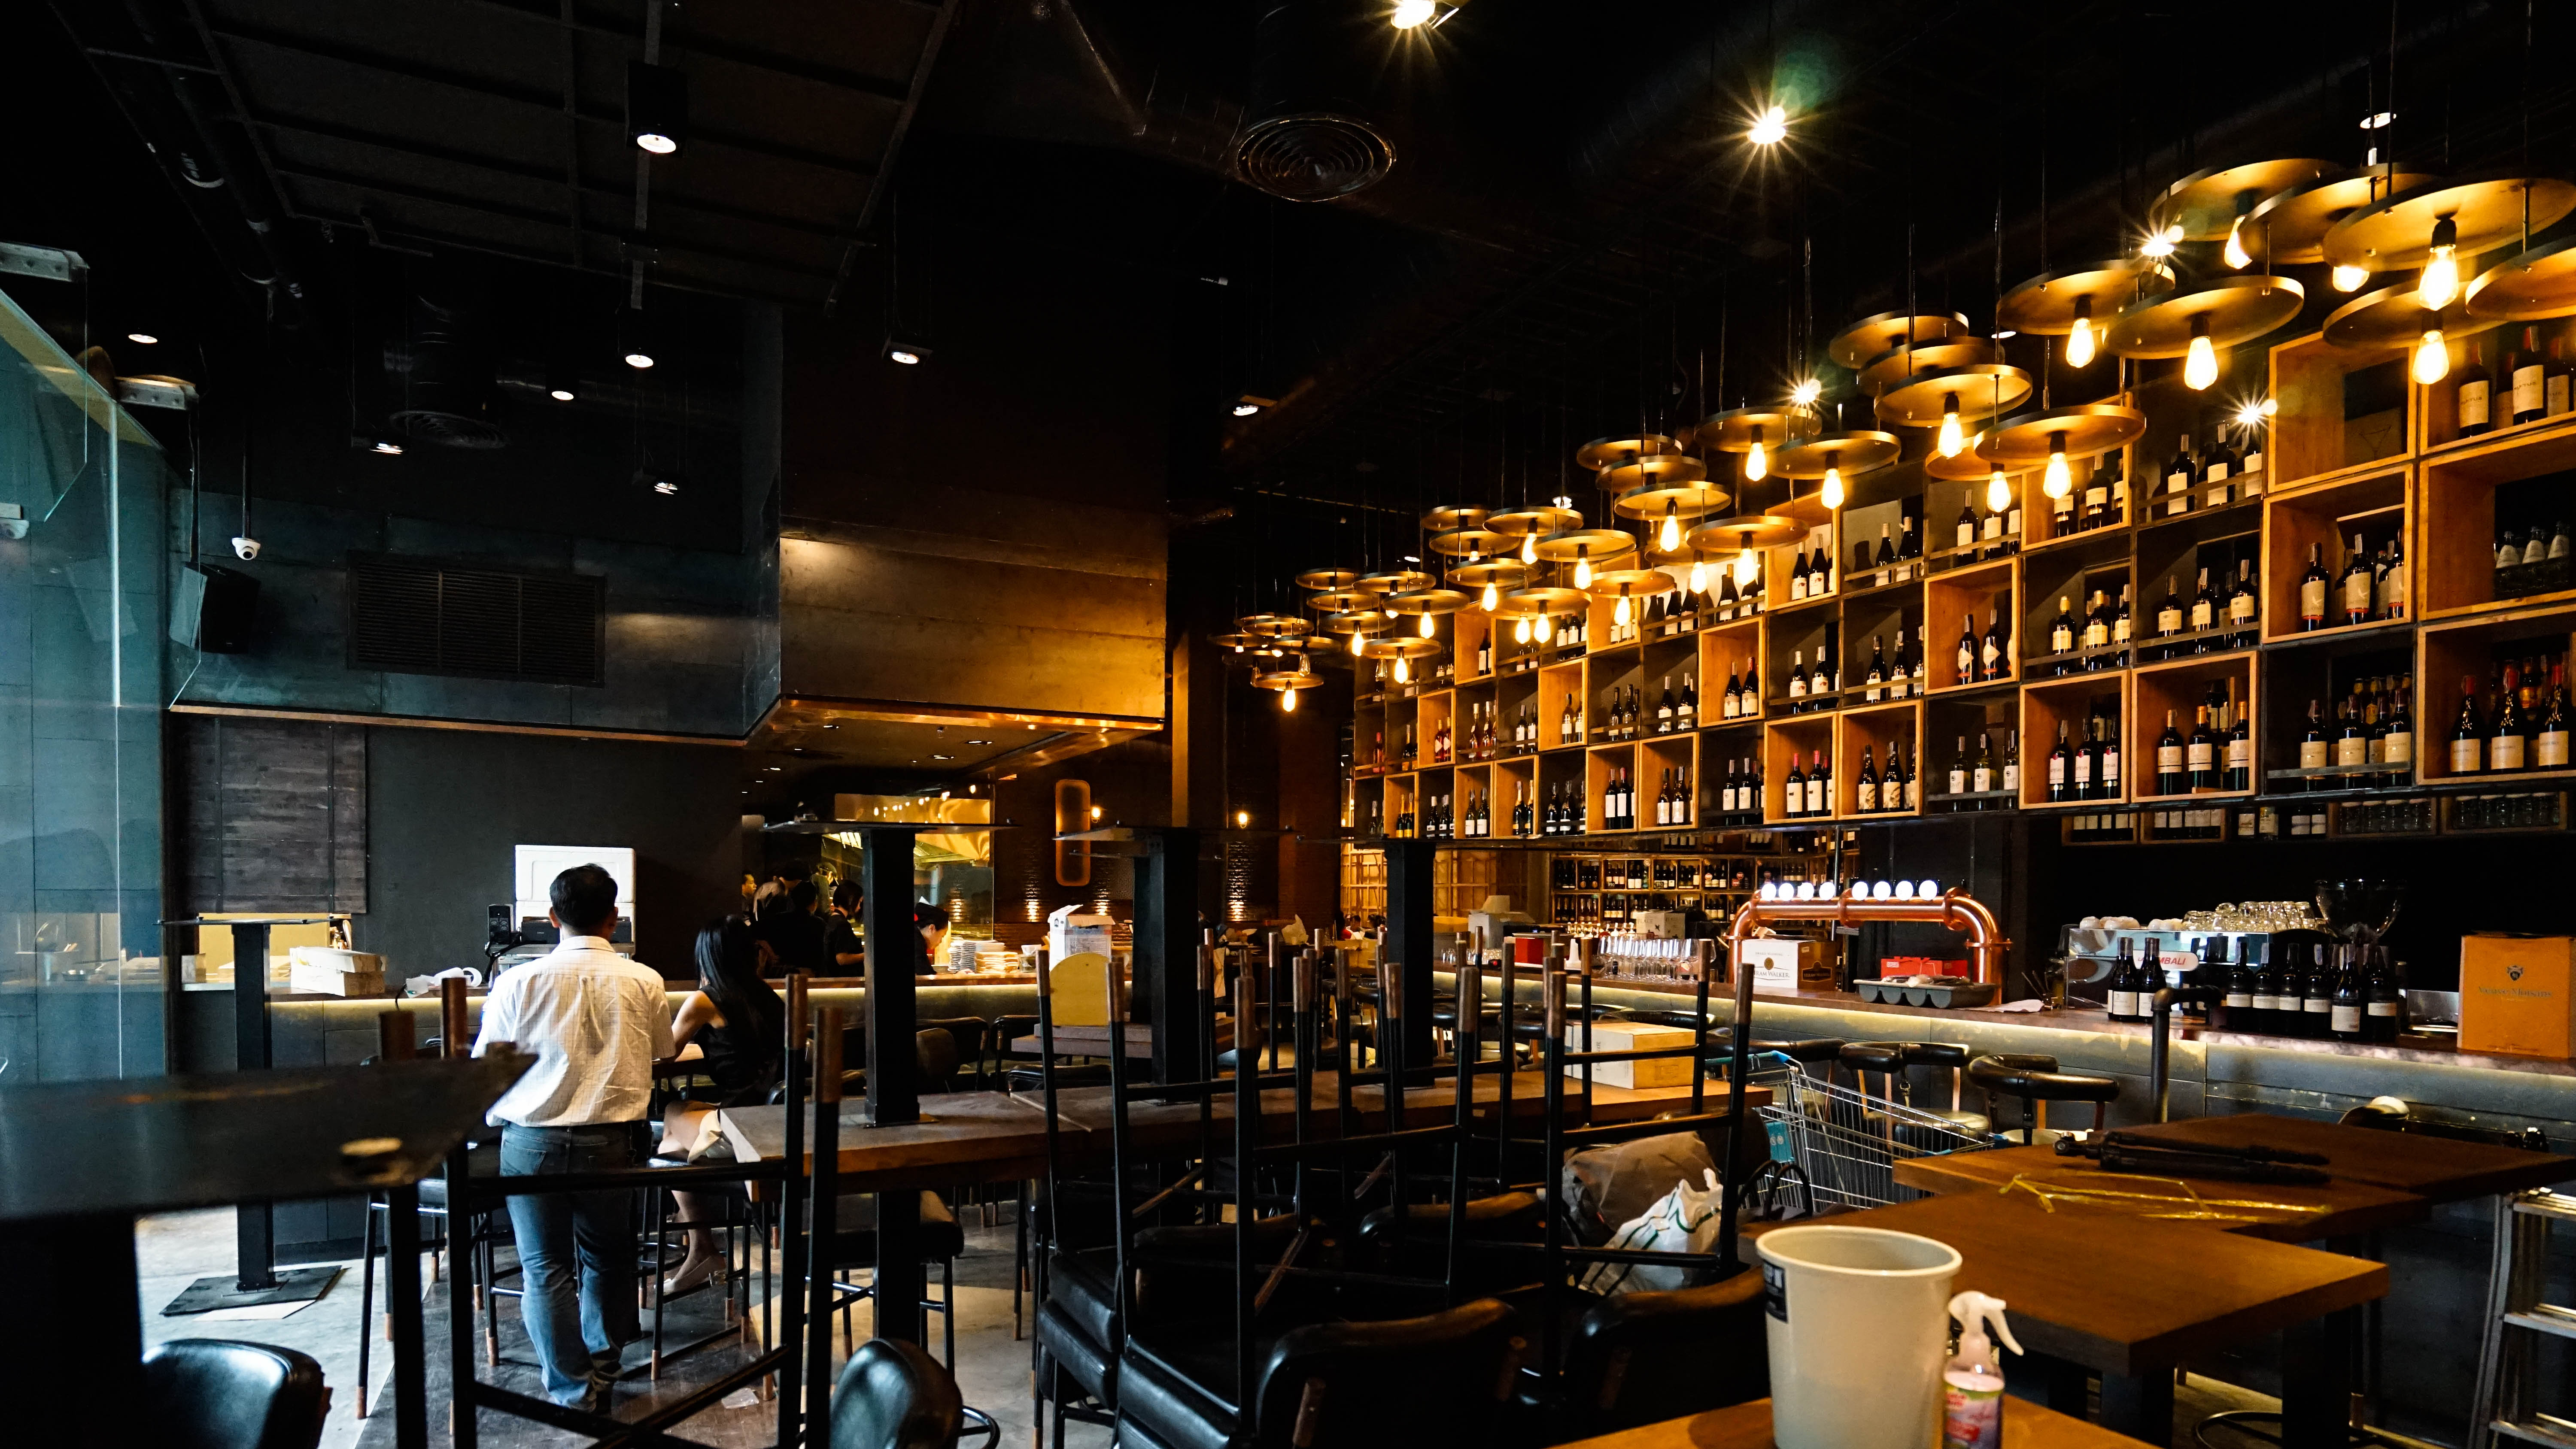 10Design wineconnection wine bar interior design hospitality 08